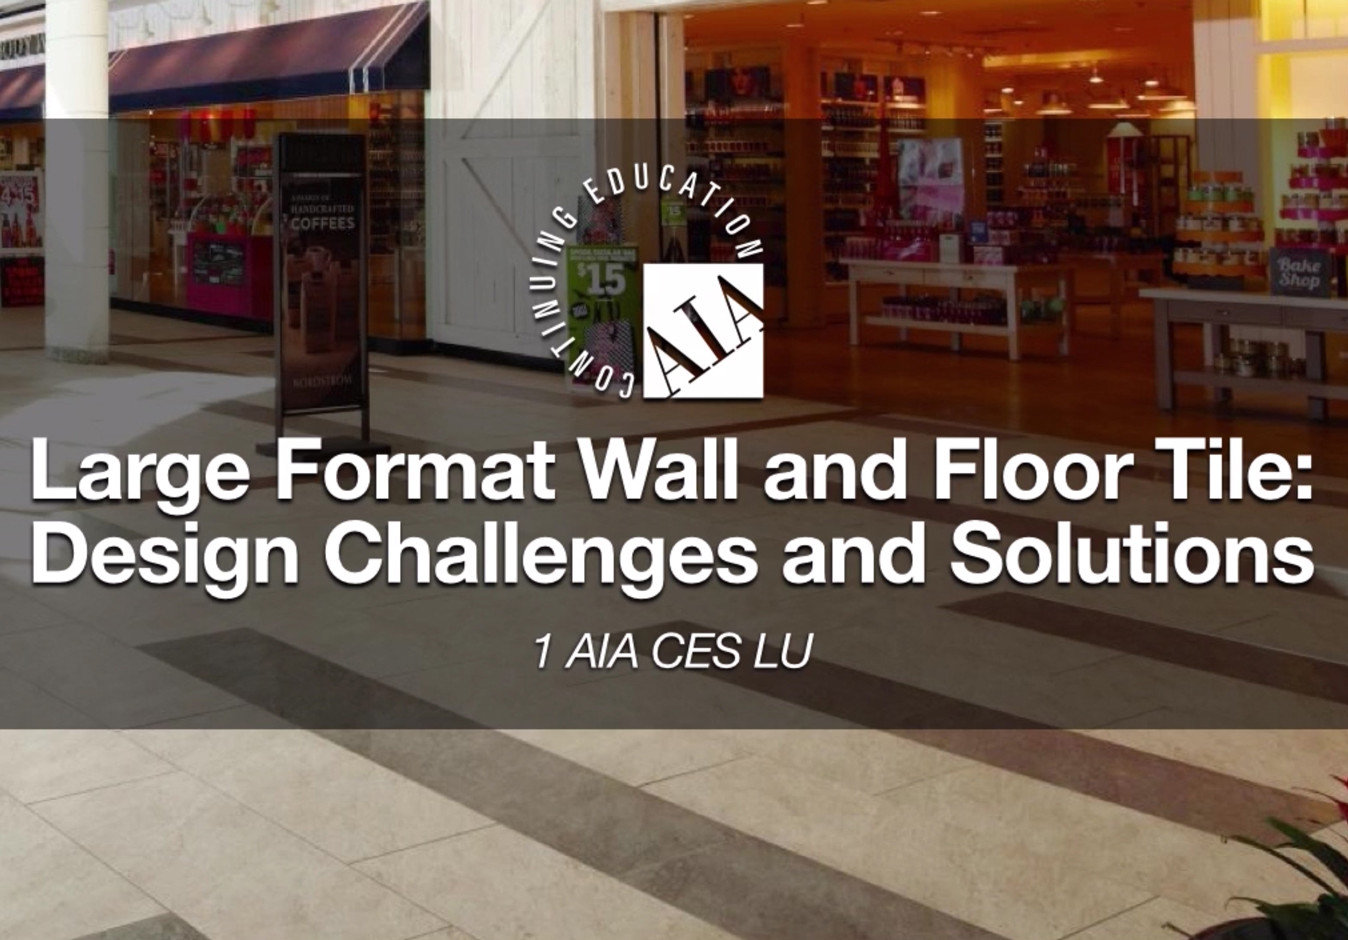 Large Format Wall and Floor Tile: Design Challenges and Solutions